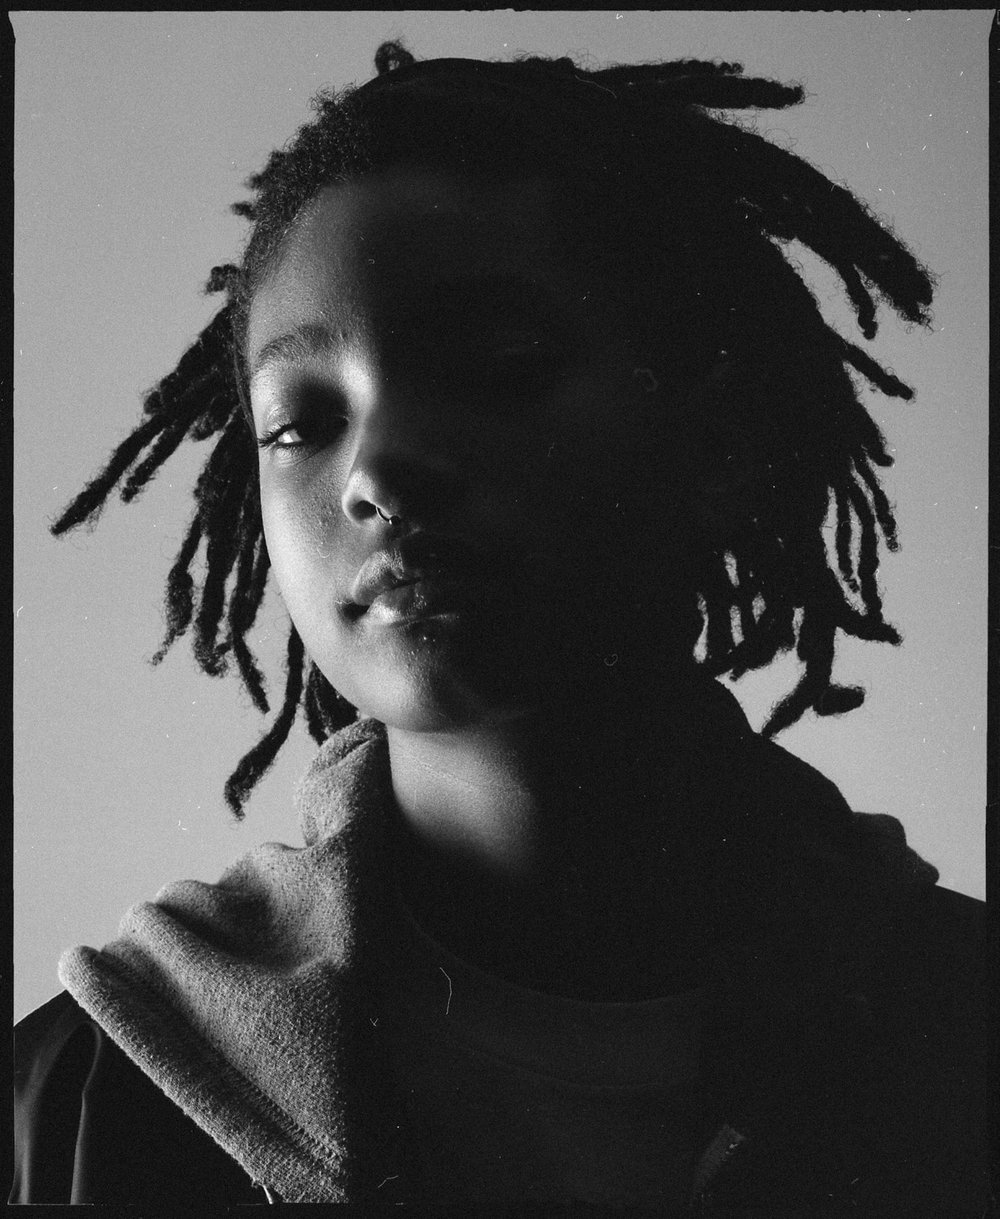 willowsmith-jackmckain5.jpg